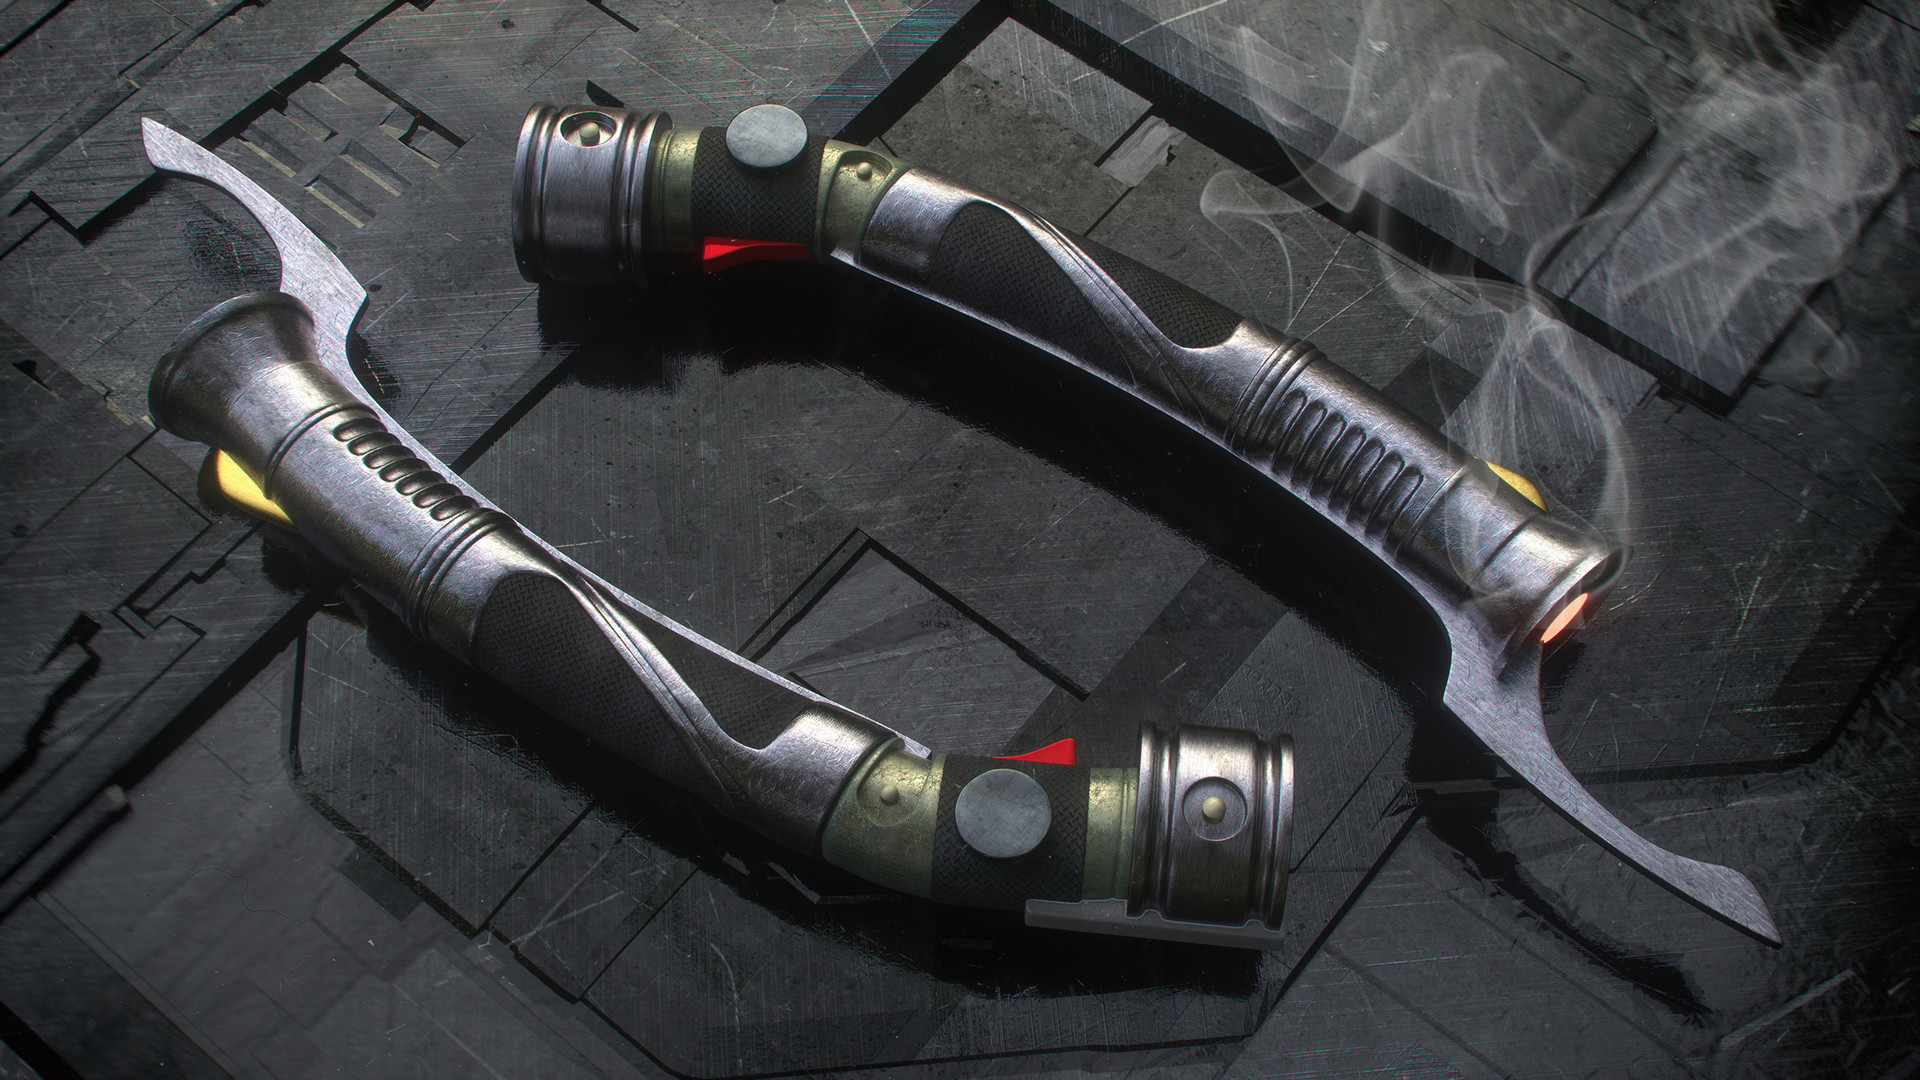 Kresimir jelusic 73 211215 dooku lightsaber render 2560